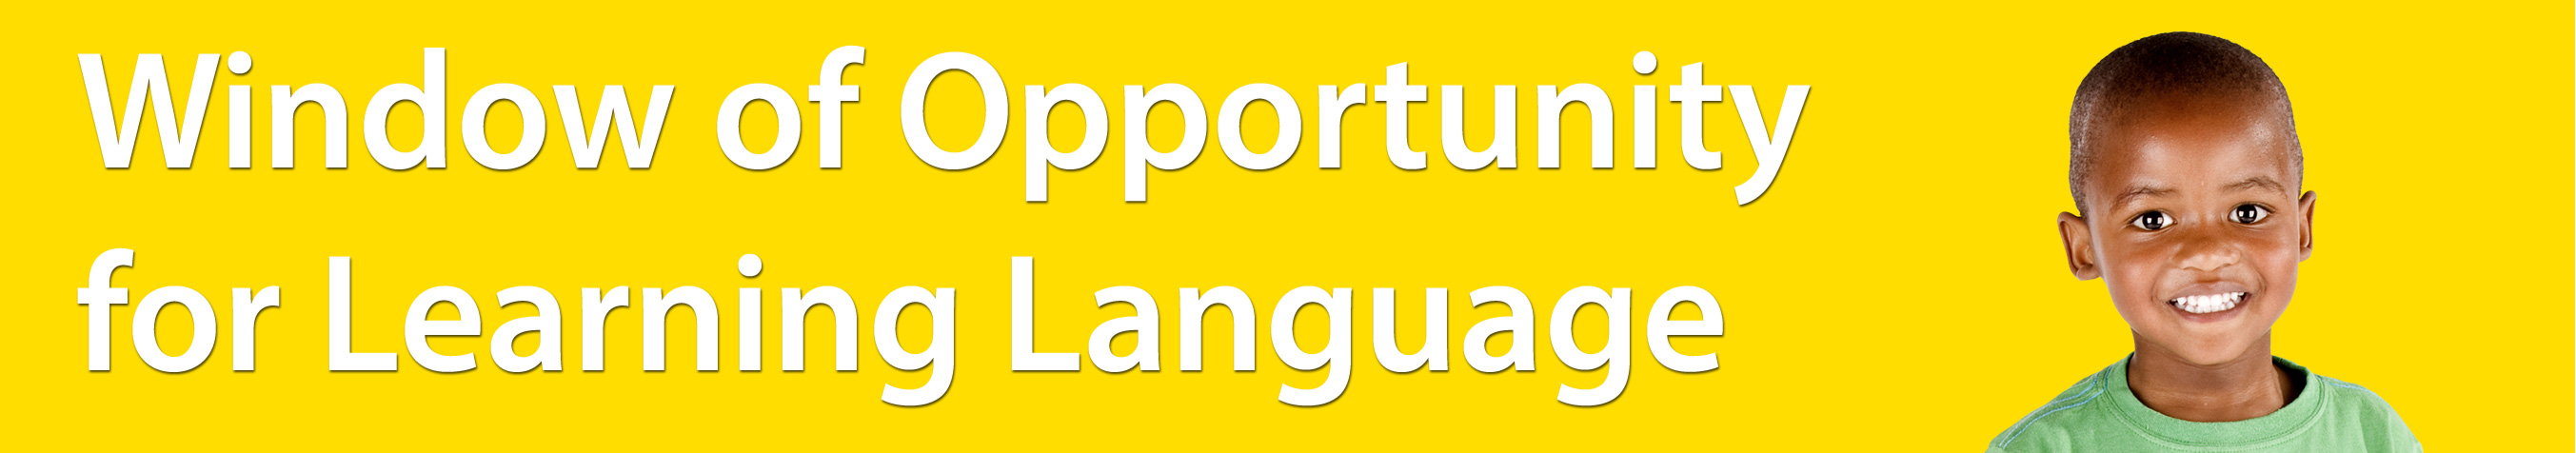 Window of Opportunity for Learning Language